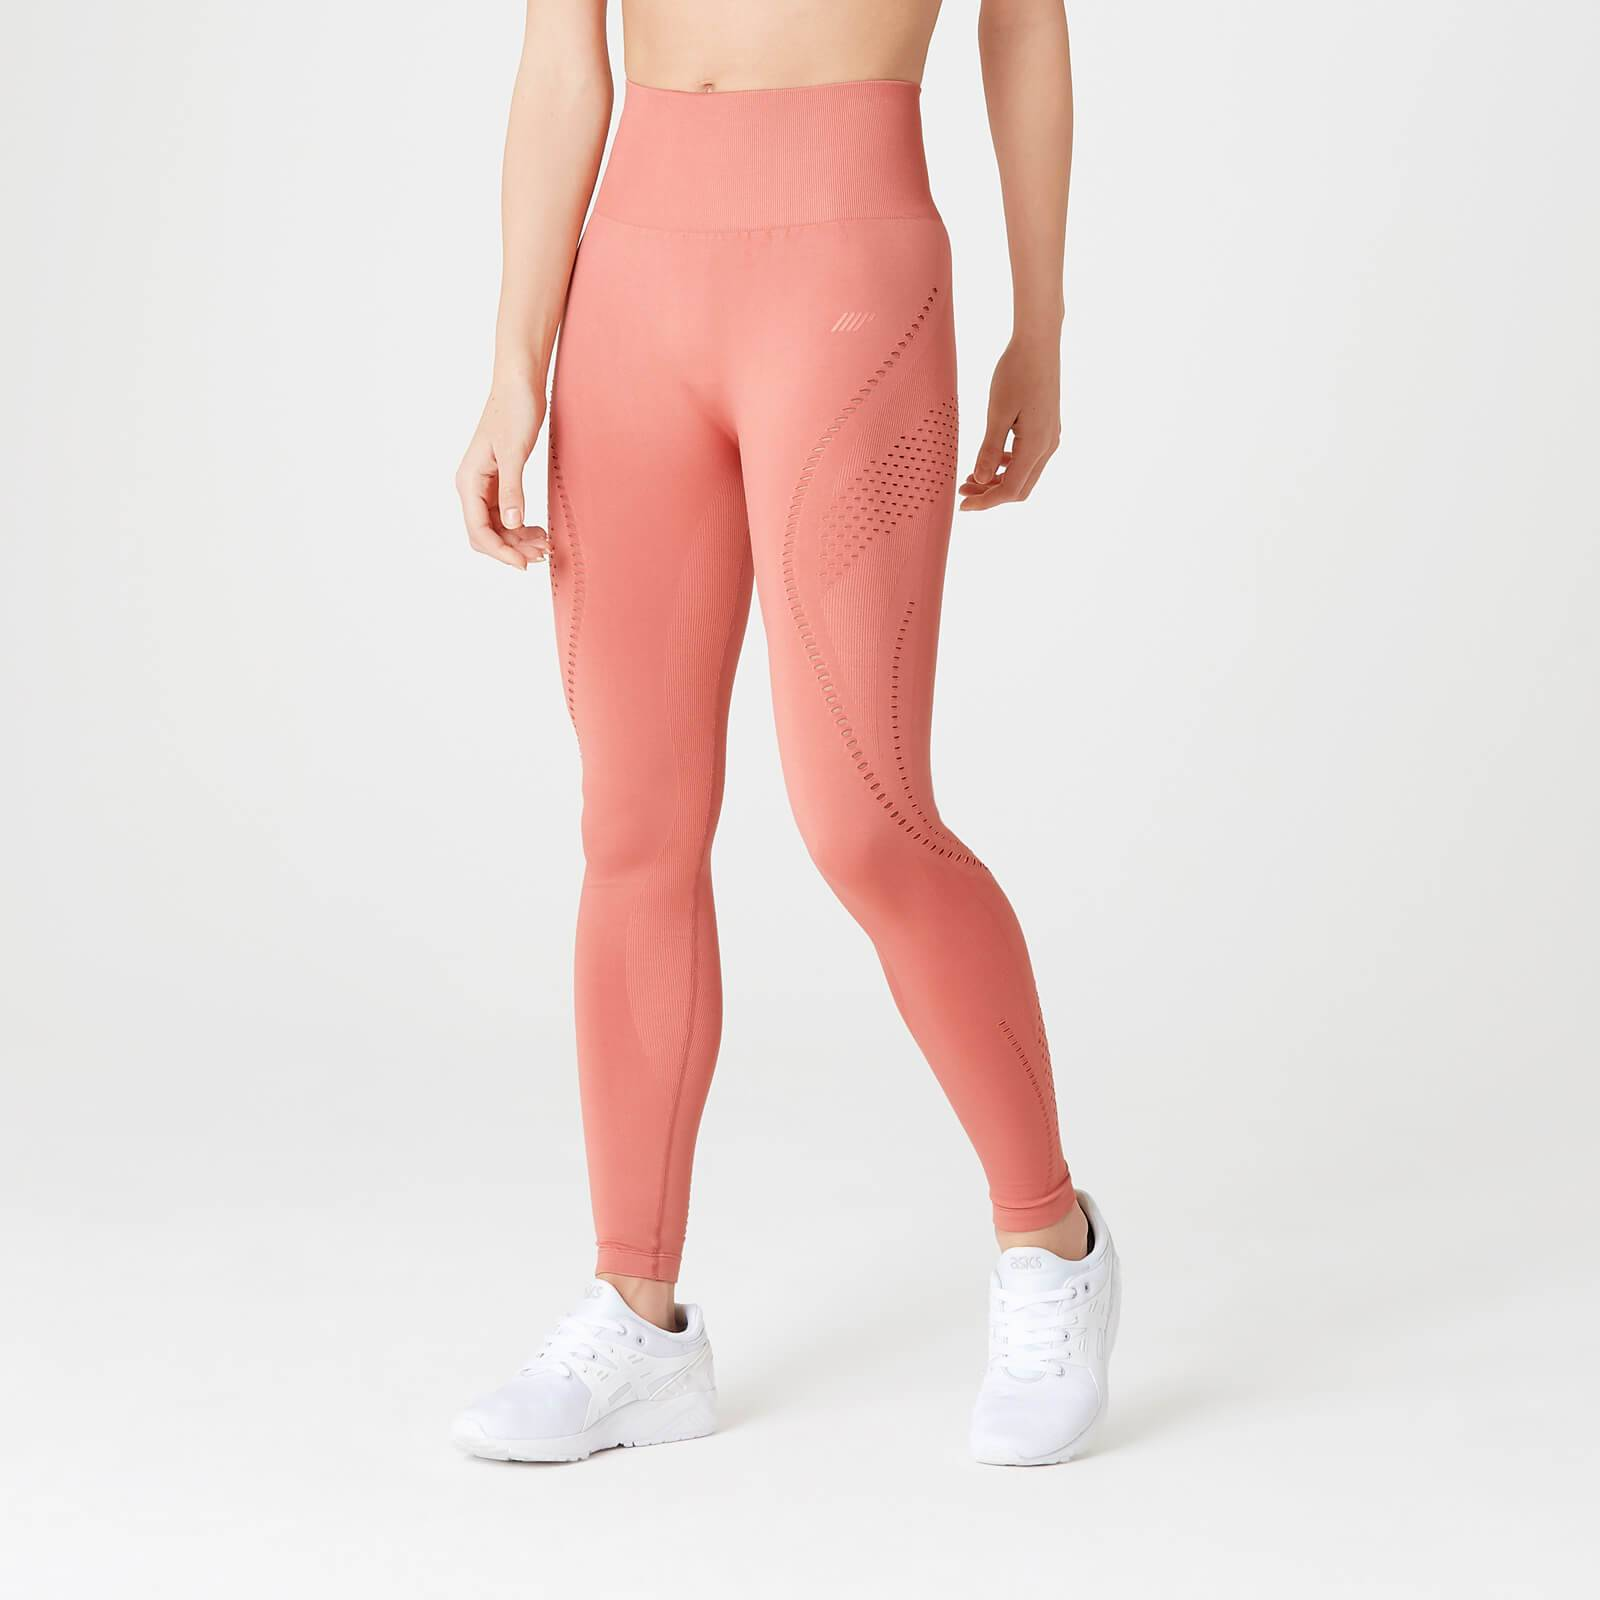 Myprotein Shape Seamless Ultra Leggings – Copper Rose - XS